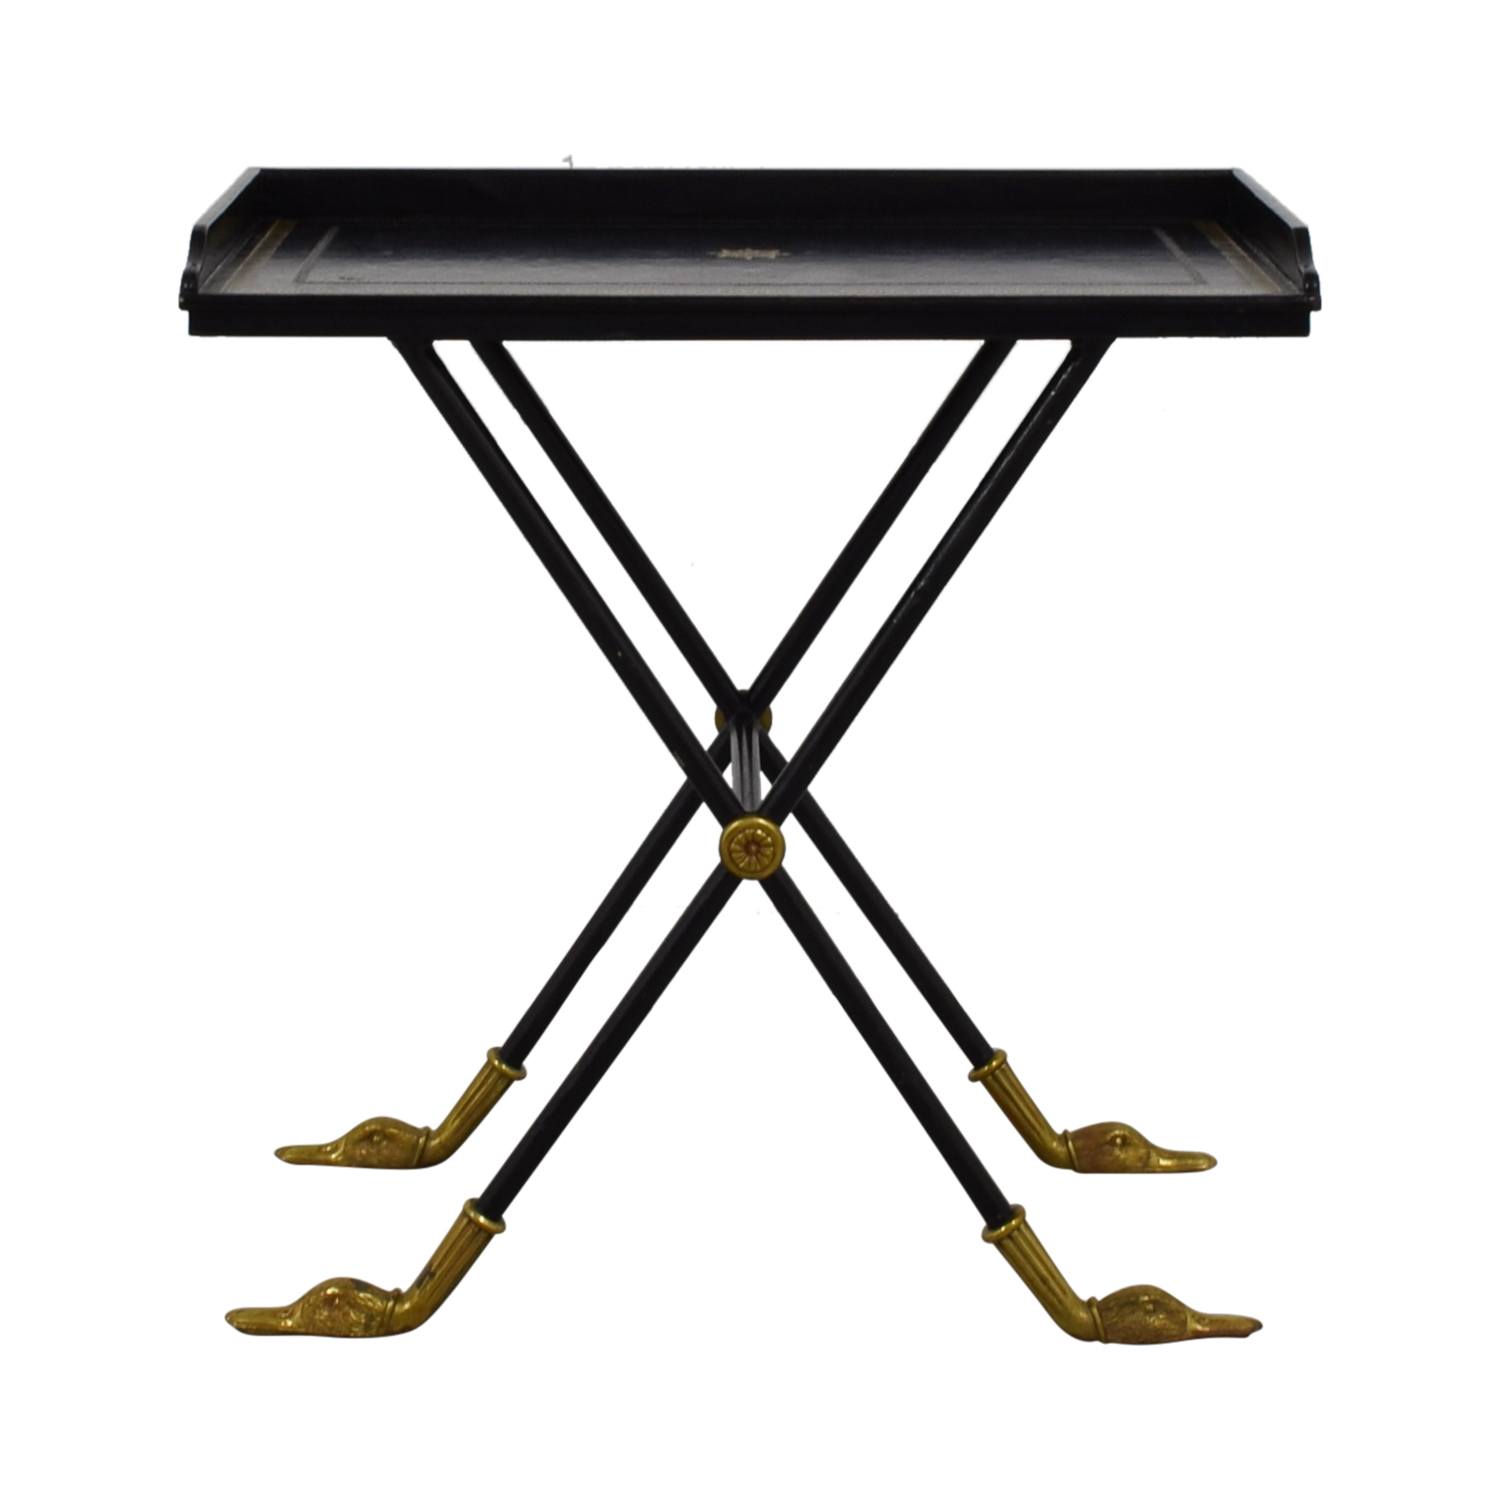 Black with Gold Trim Bar Tray